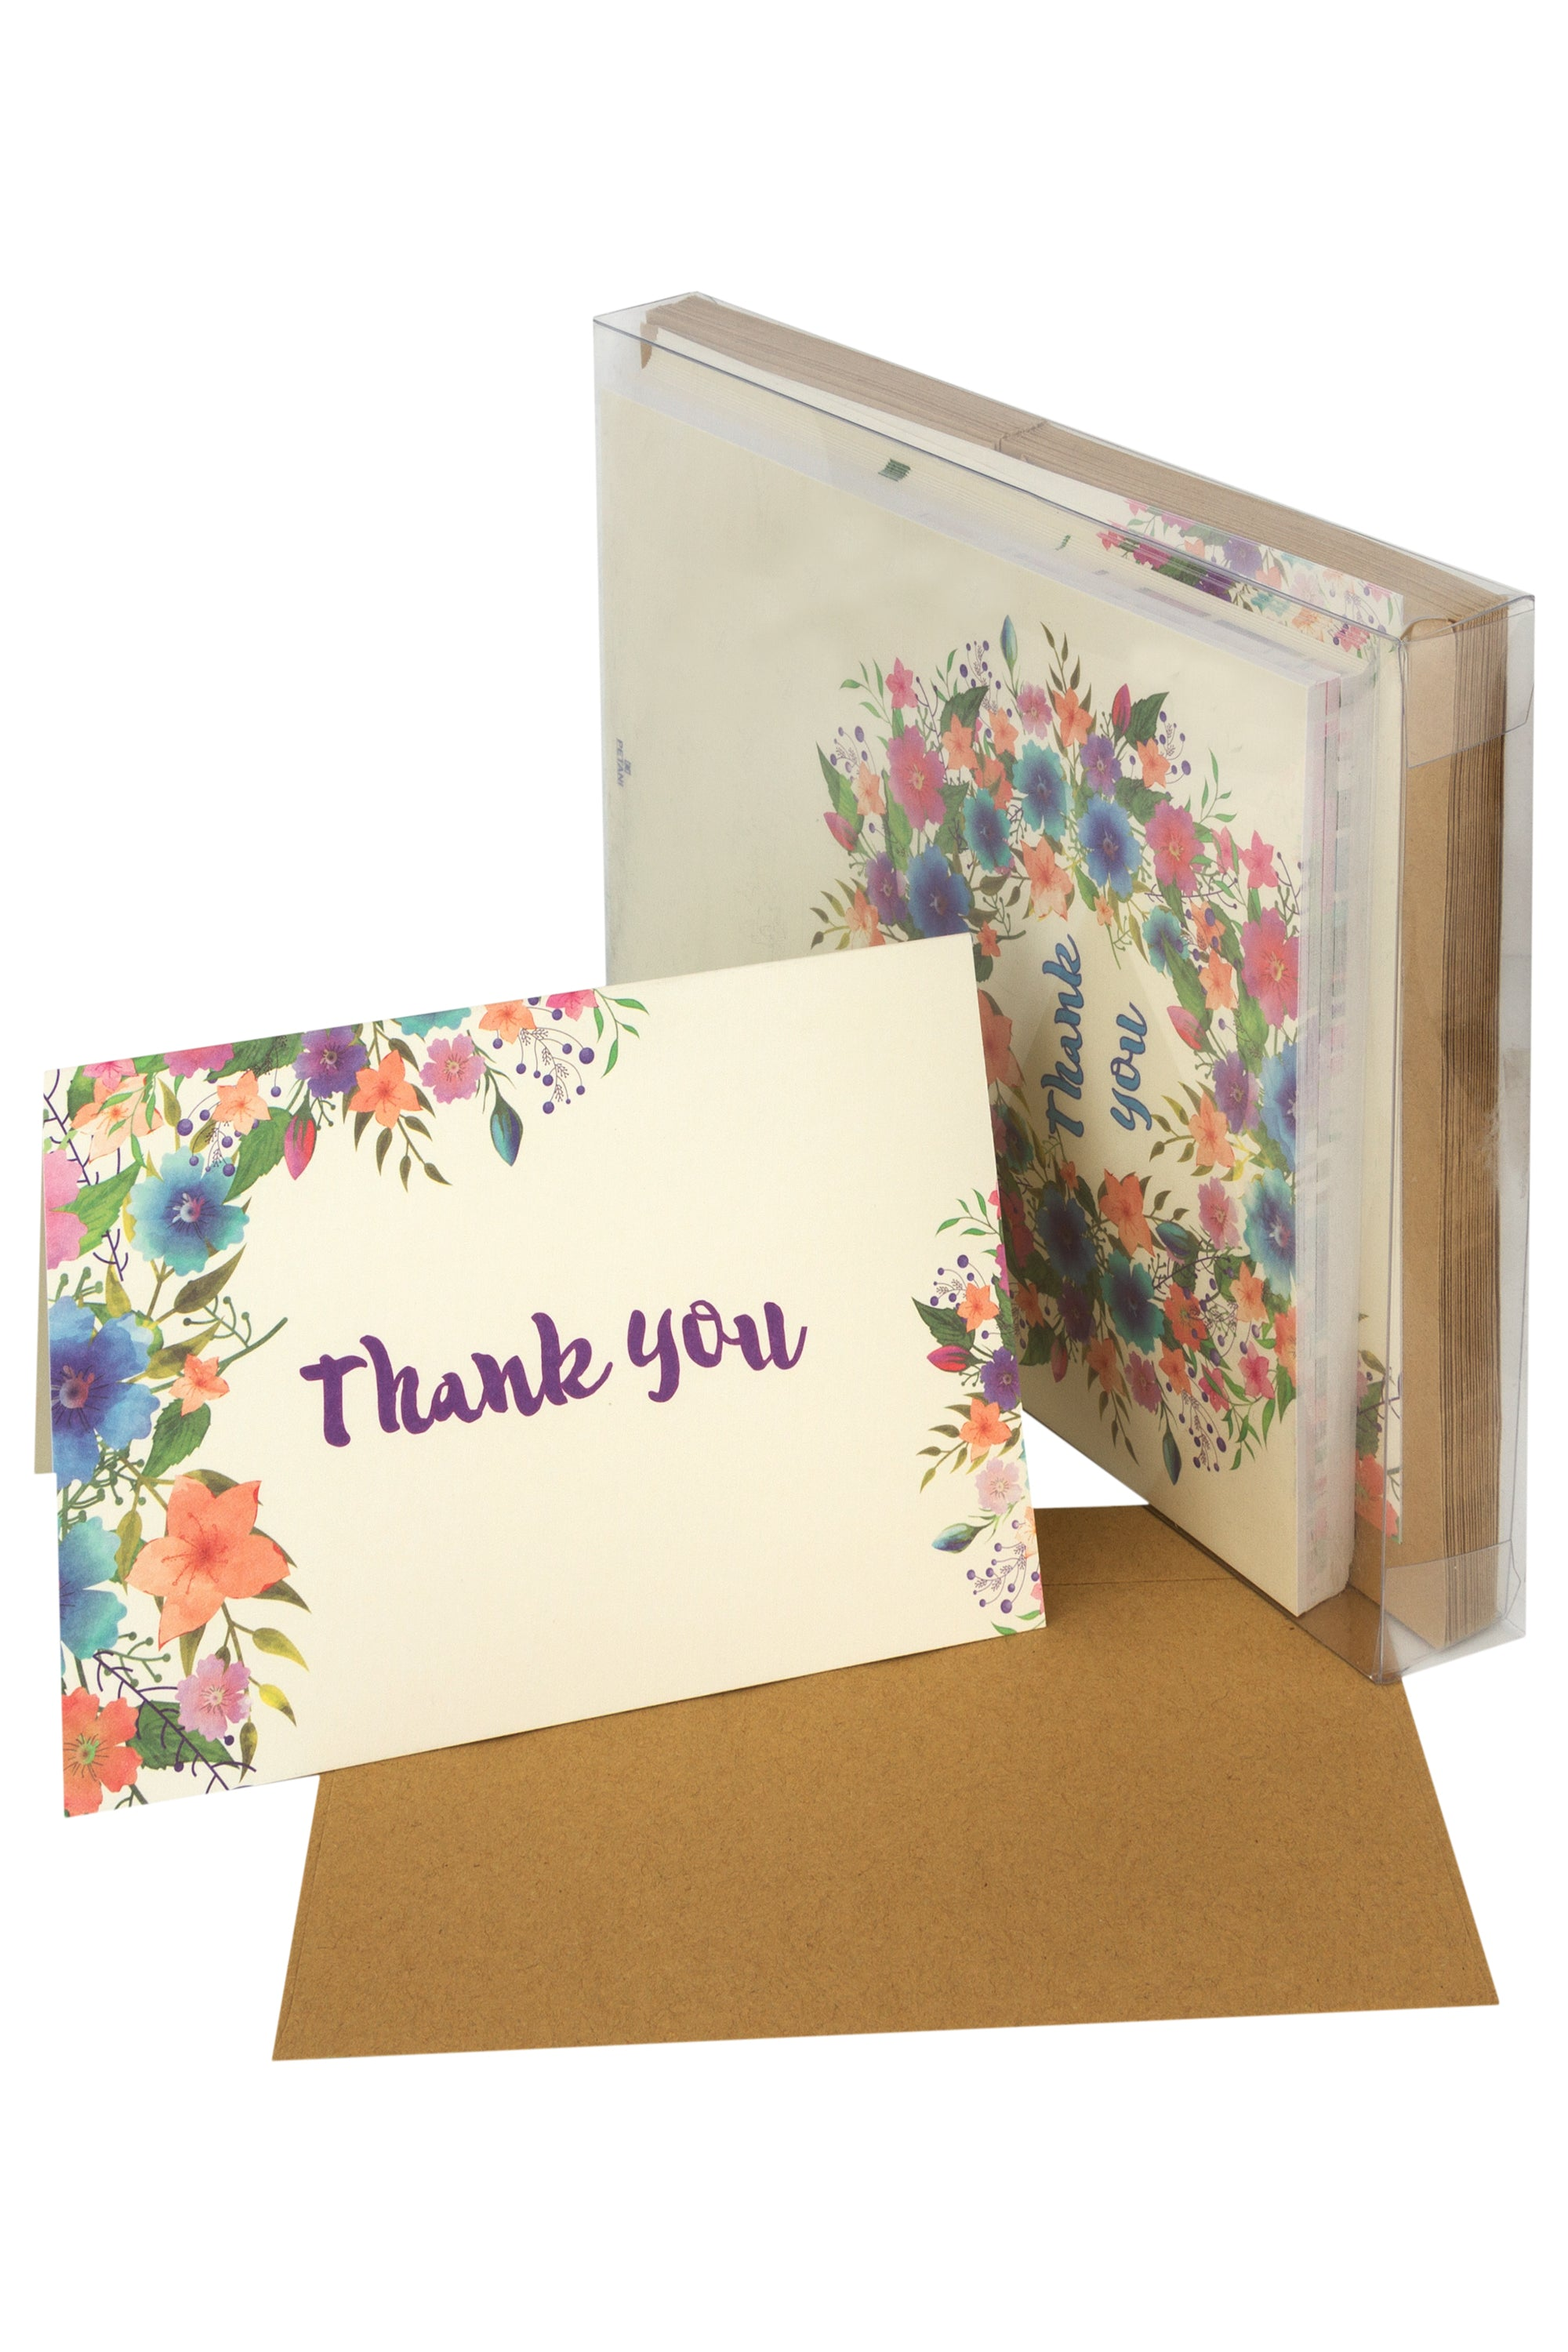 48 Baby Shower Thank You Cards, 6 Floral Watercolor Design, Box Kraft Envelopes for Wedding Parties